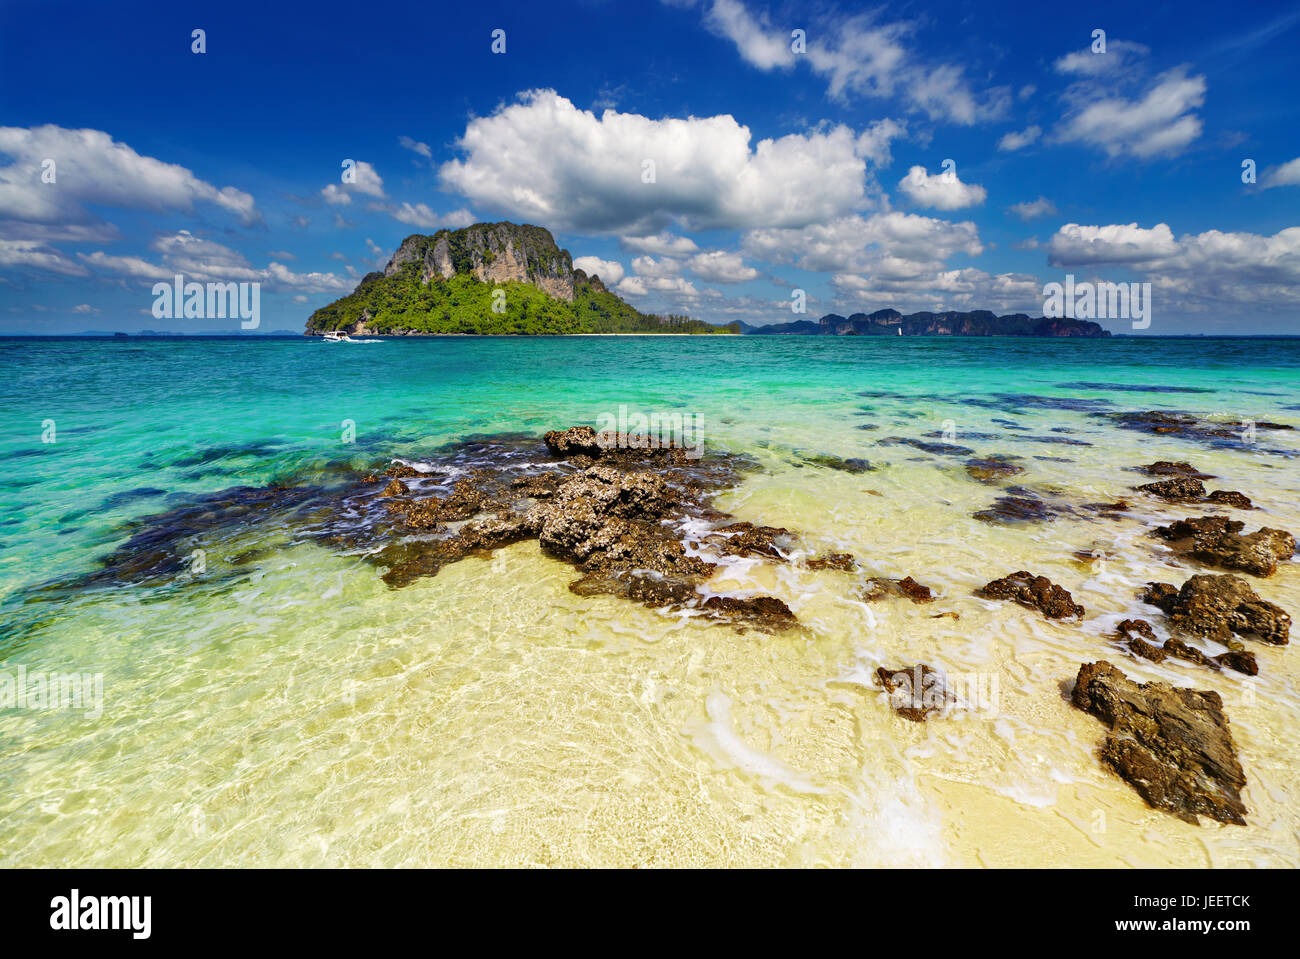 Tropical beach, Andaman Sea, Thailand - Stock Image